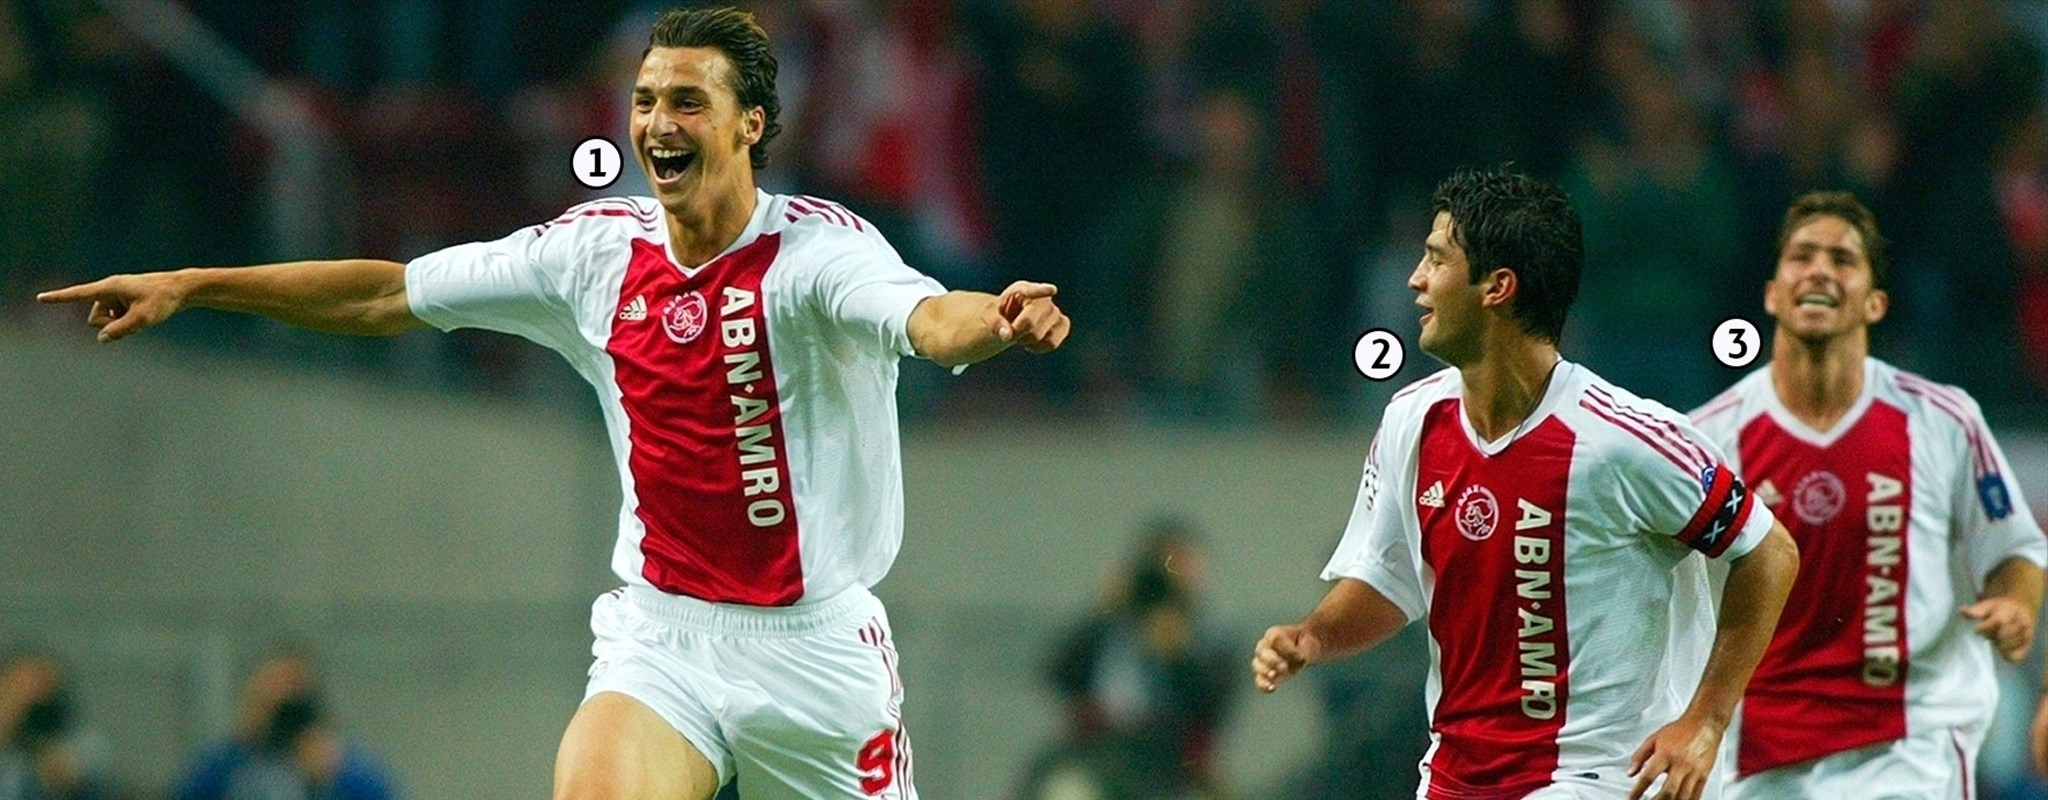 Snap shot: The first time Ajax and Lyon met